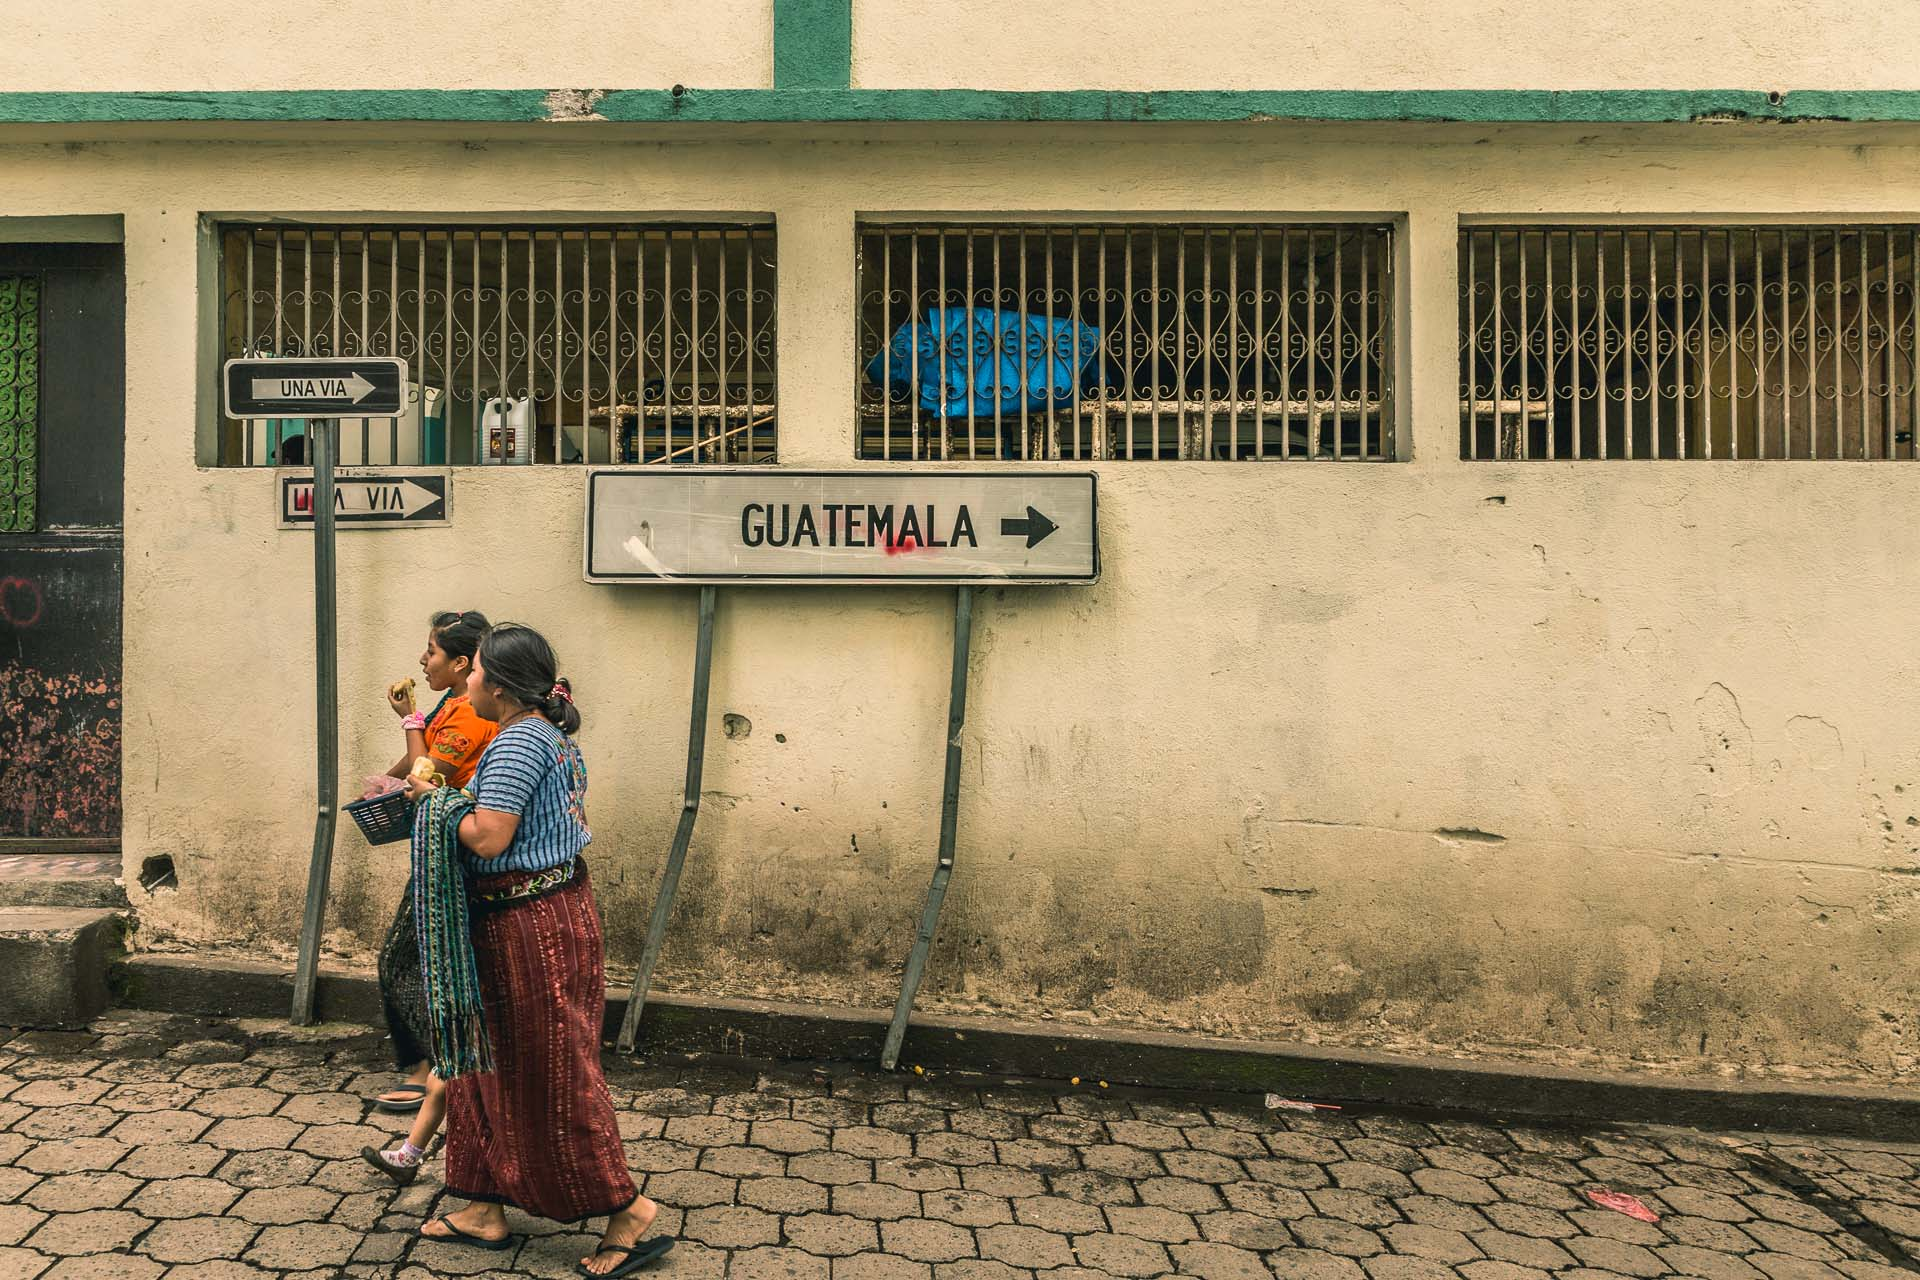 Here two girls are walking away from Guatemala in Santiago by Lake Atitlán.